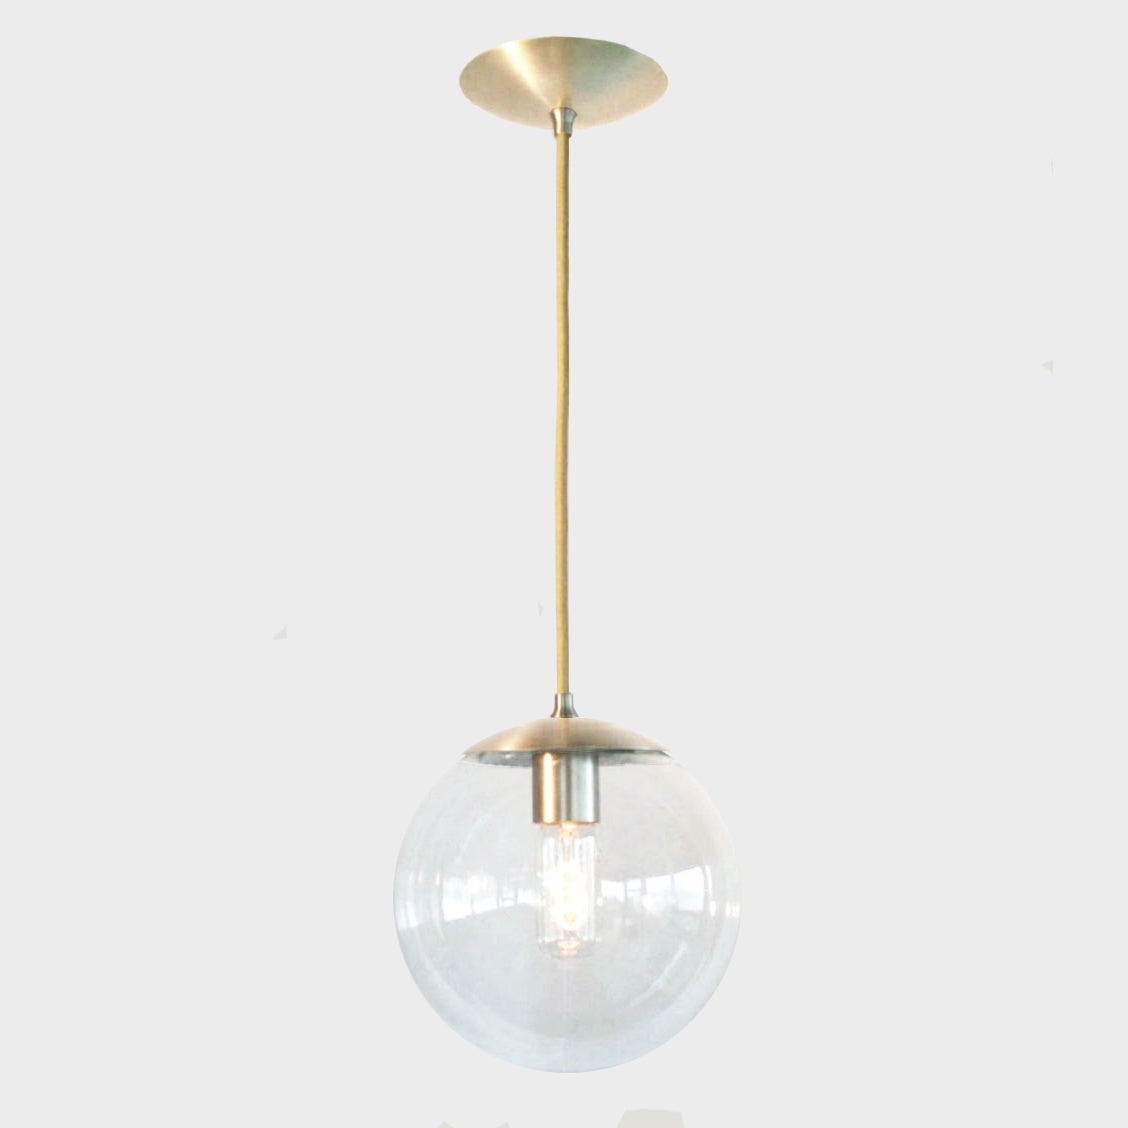 brass globe pendant light. Image Of Adapted For International Use - Mid Century Modern Clear 8\ Brass Globe Pendant Light